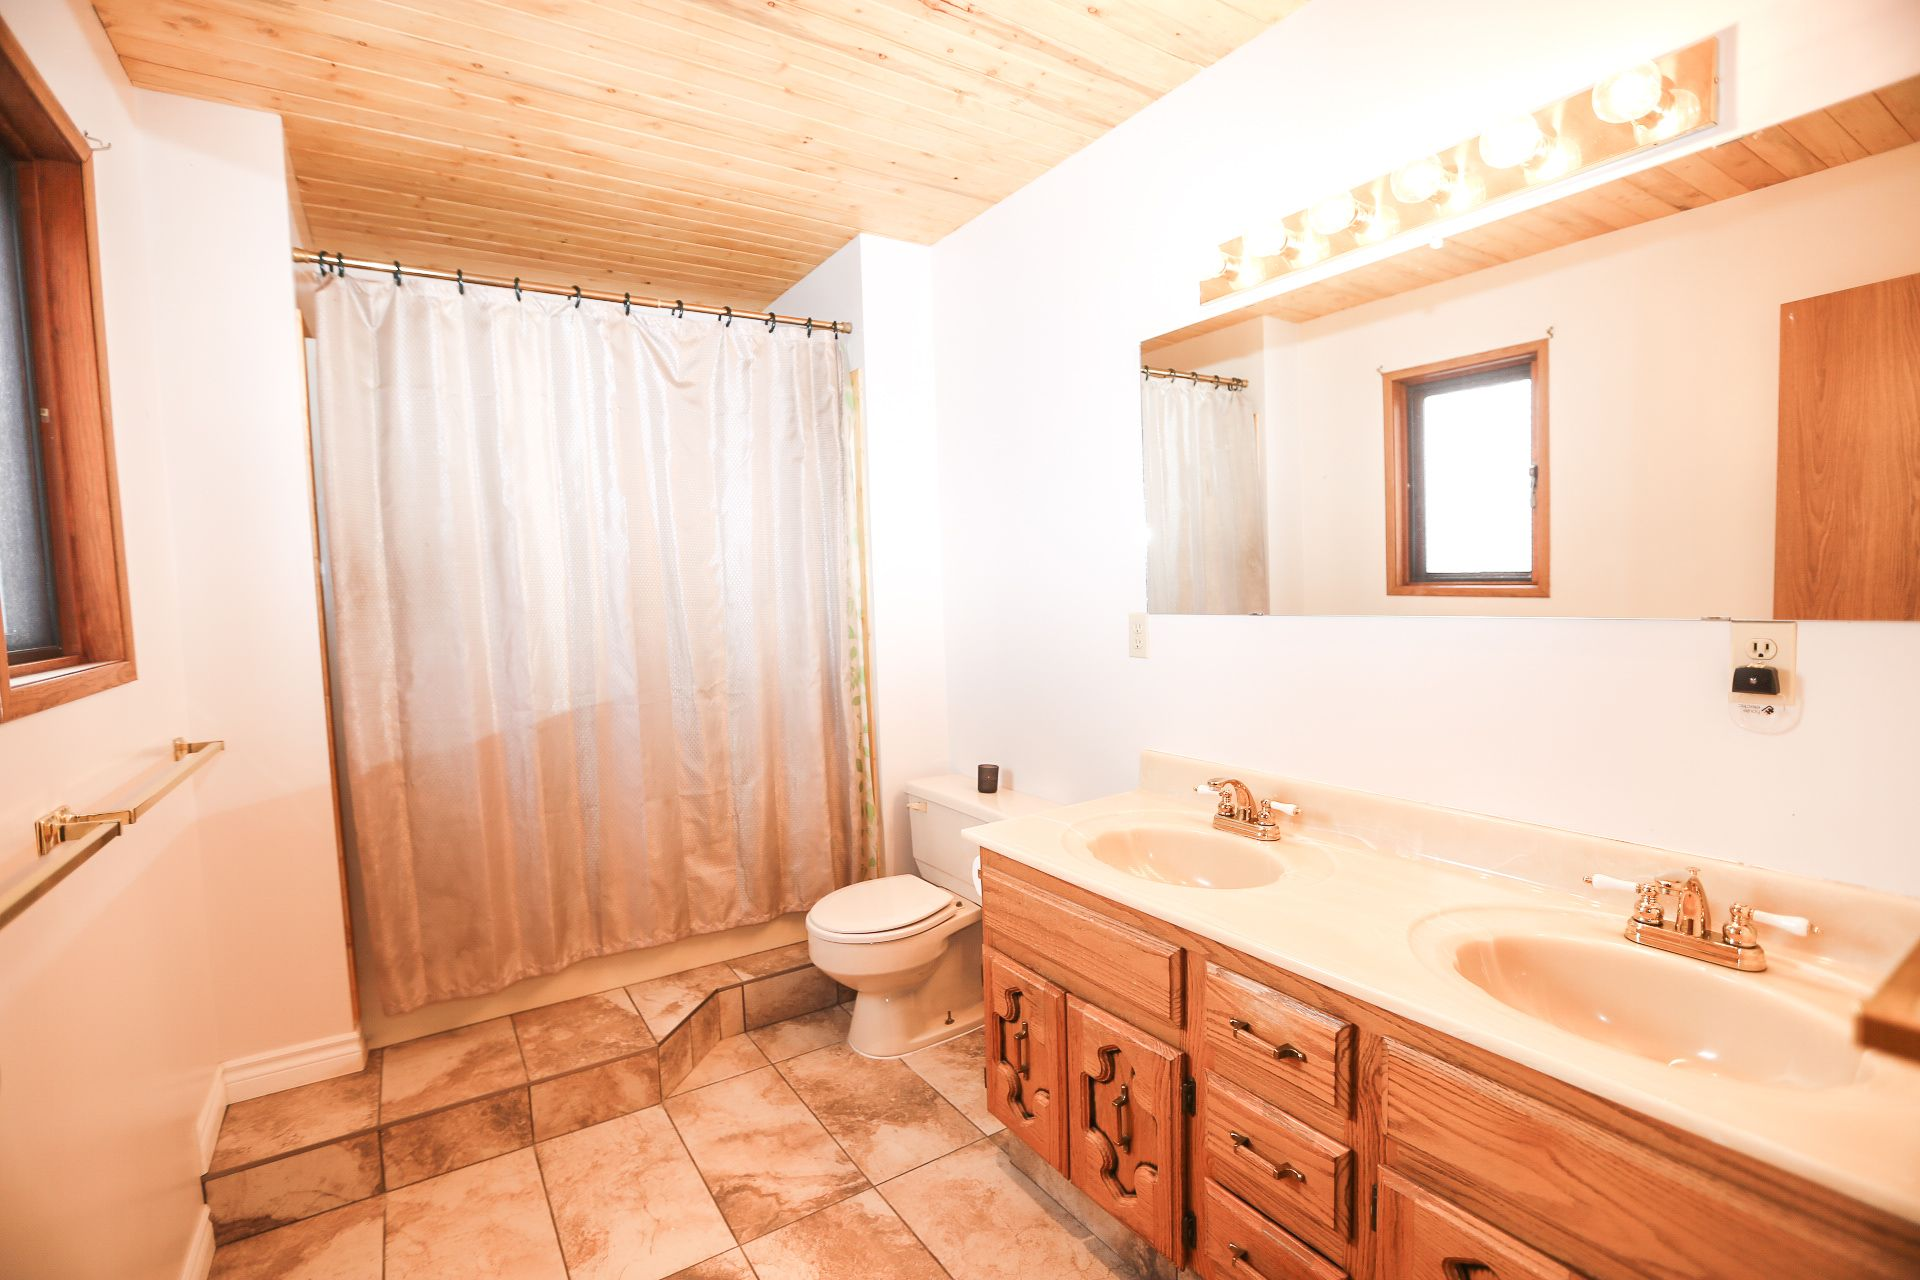 Photo 15: Photos: 434 ROBIN DRIVE: BARRIERE House for sale (NORTH EAST)  : MLS®# 160553